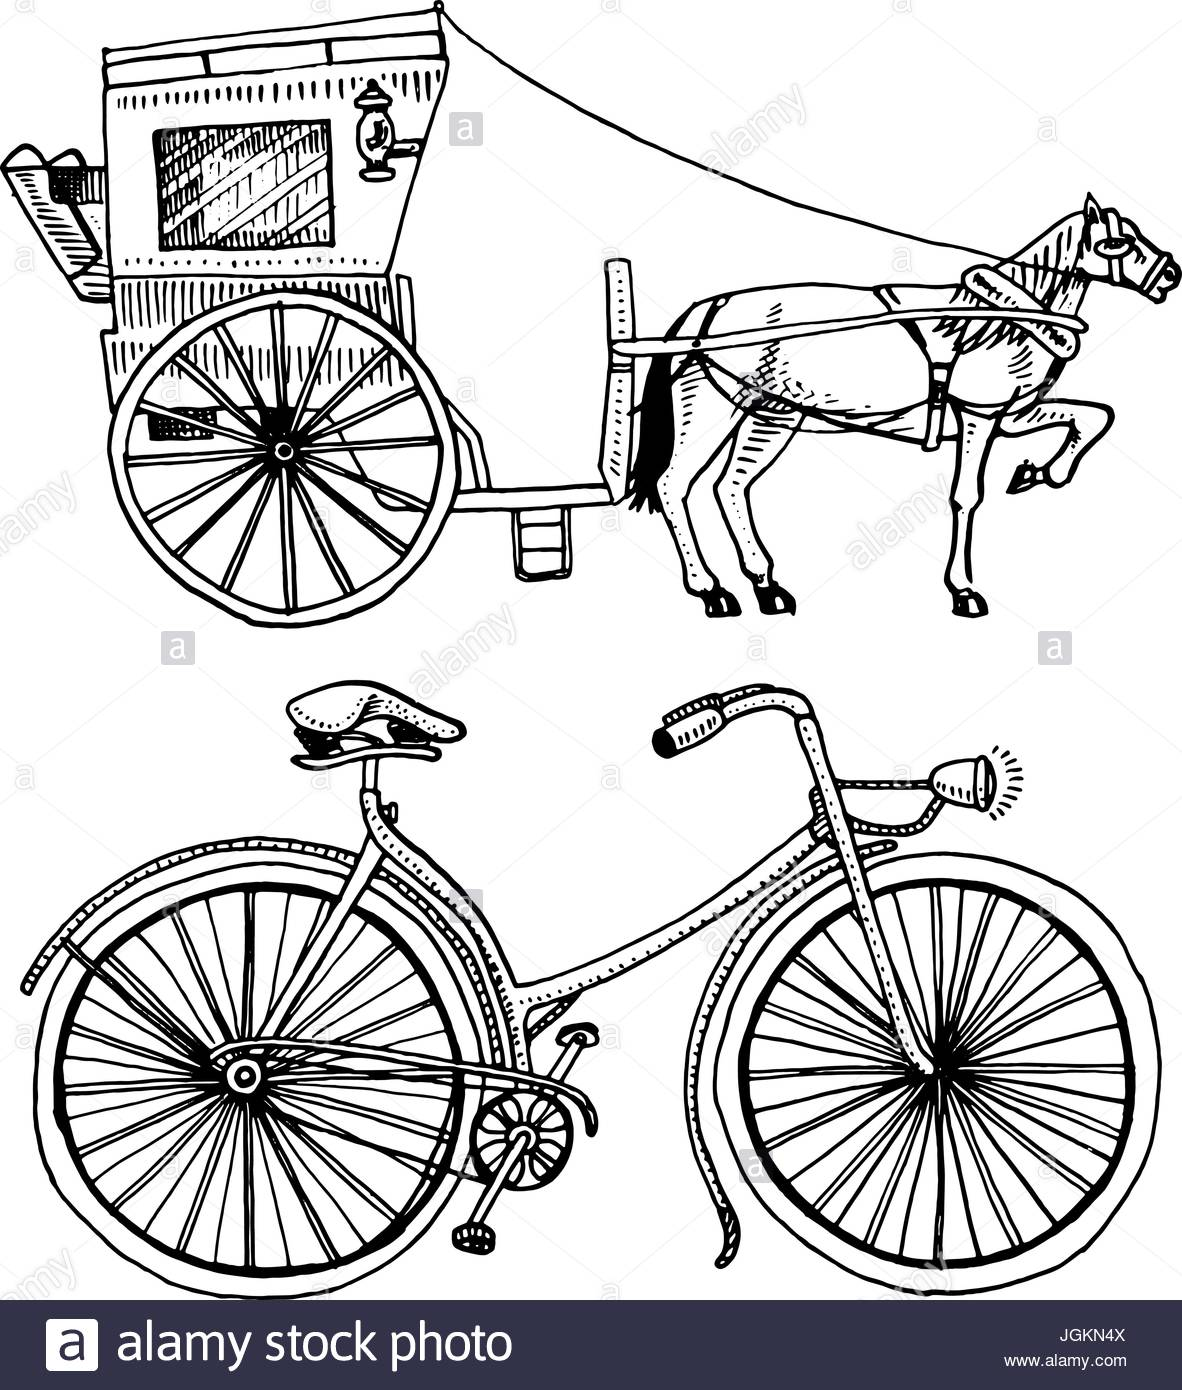 1182x1390 Horse Drawn Carriage Or Coach And Bicycle, Bike Or Velocipede